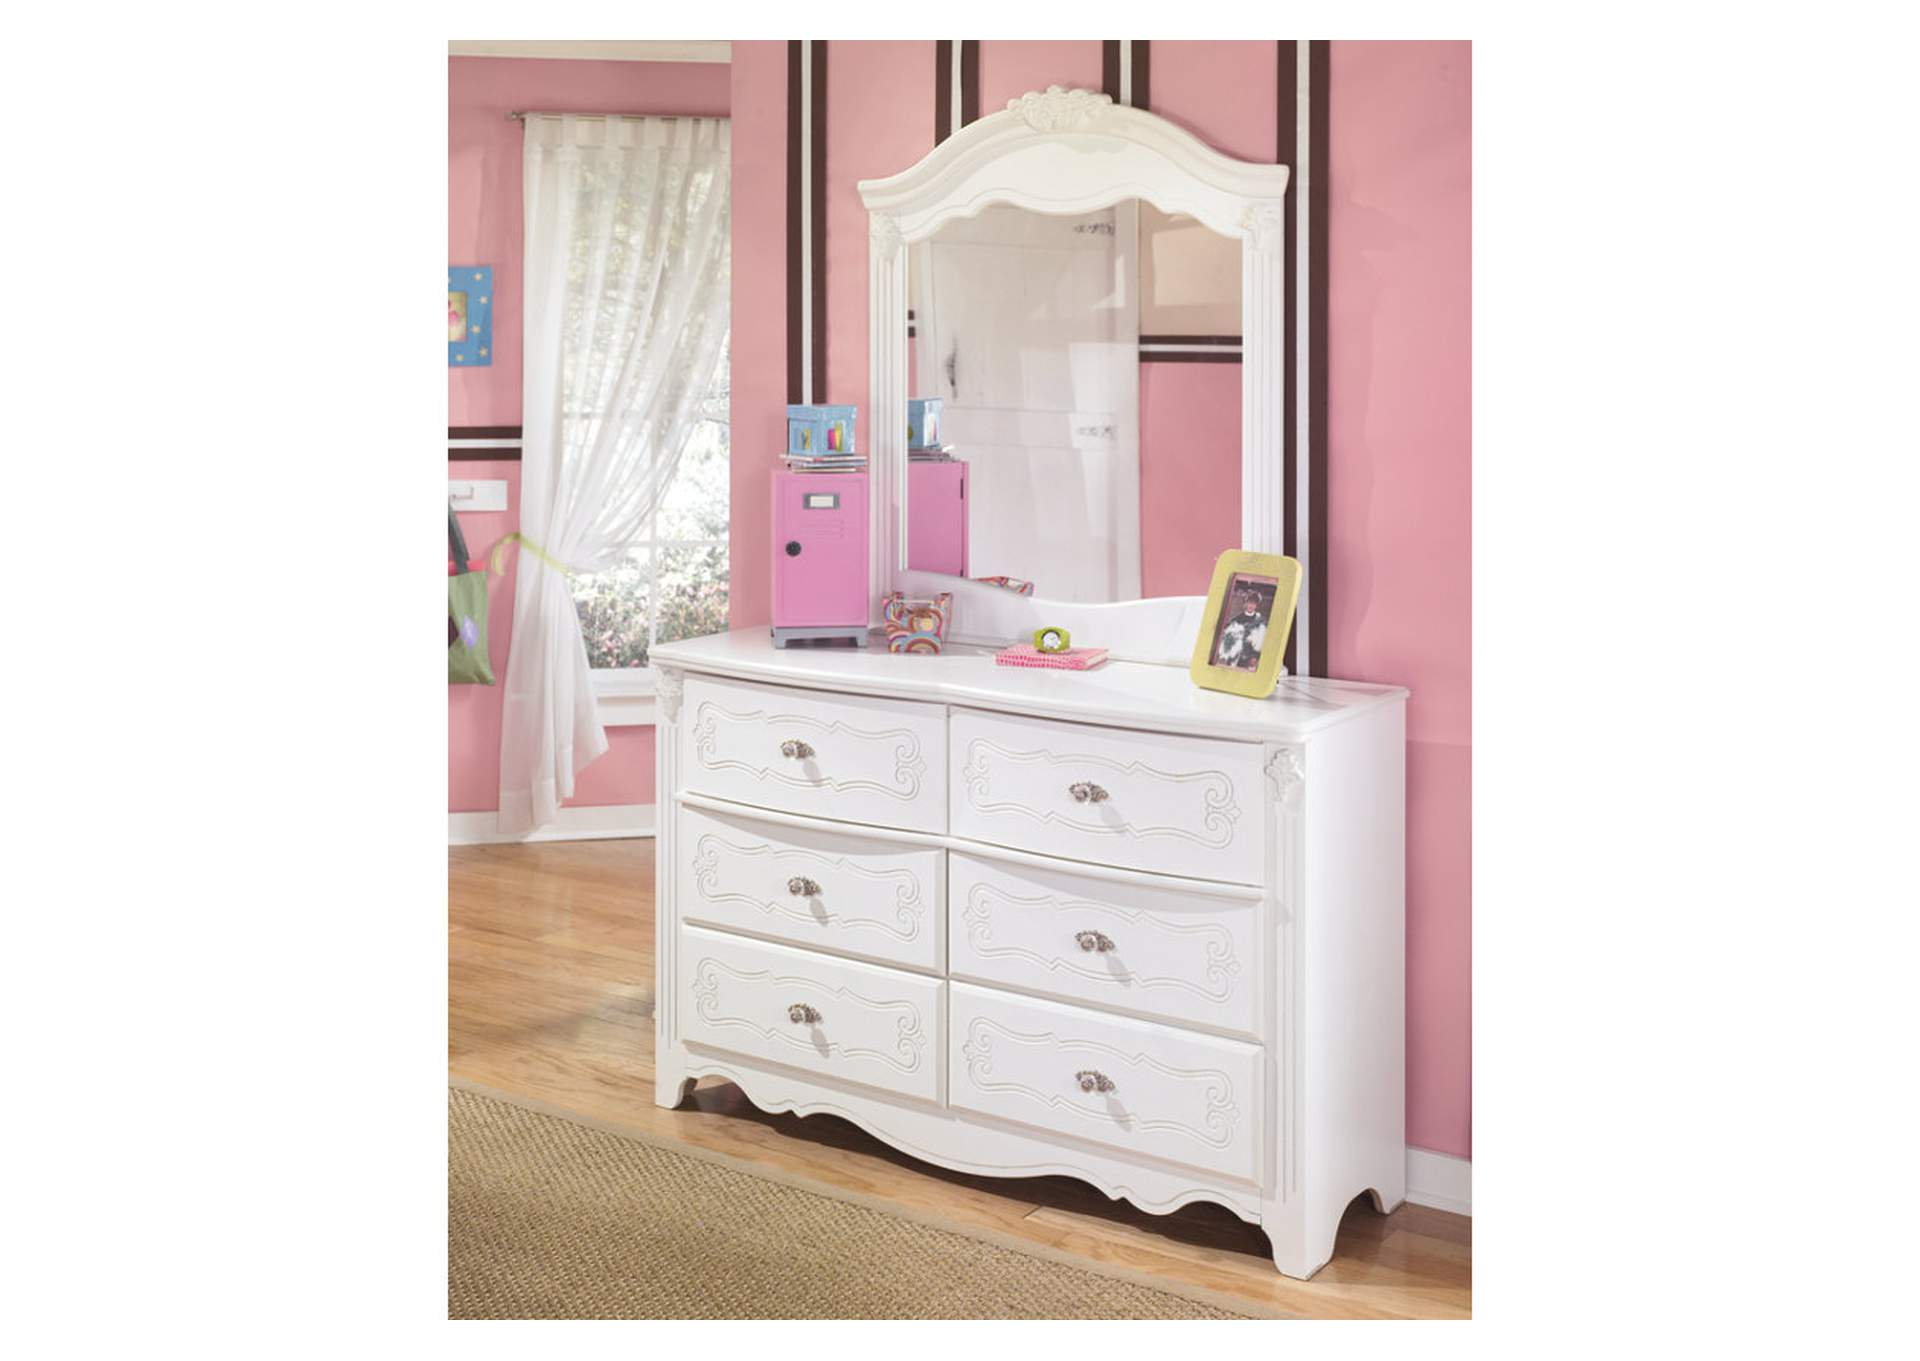 Exquisite Dresser,ABF Signature Design by Ashley